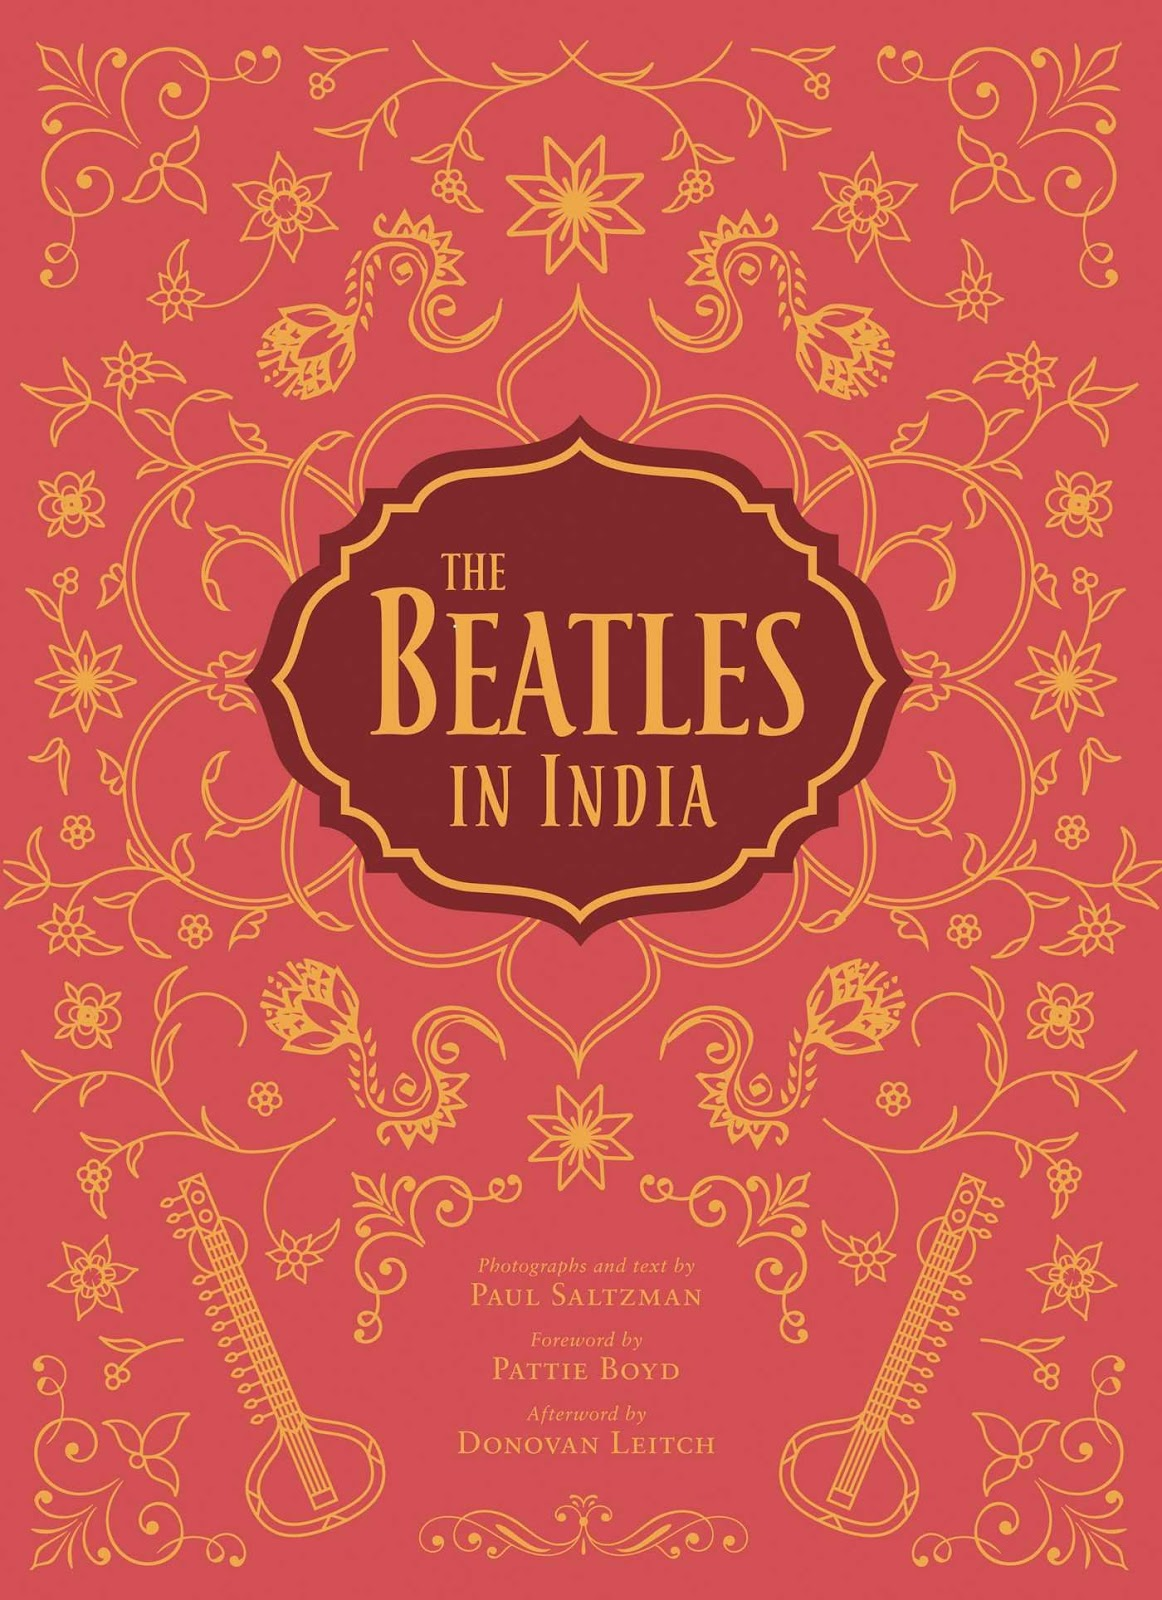 The Daily Beatle: The Beatles in India - new documentary